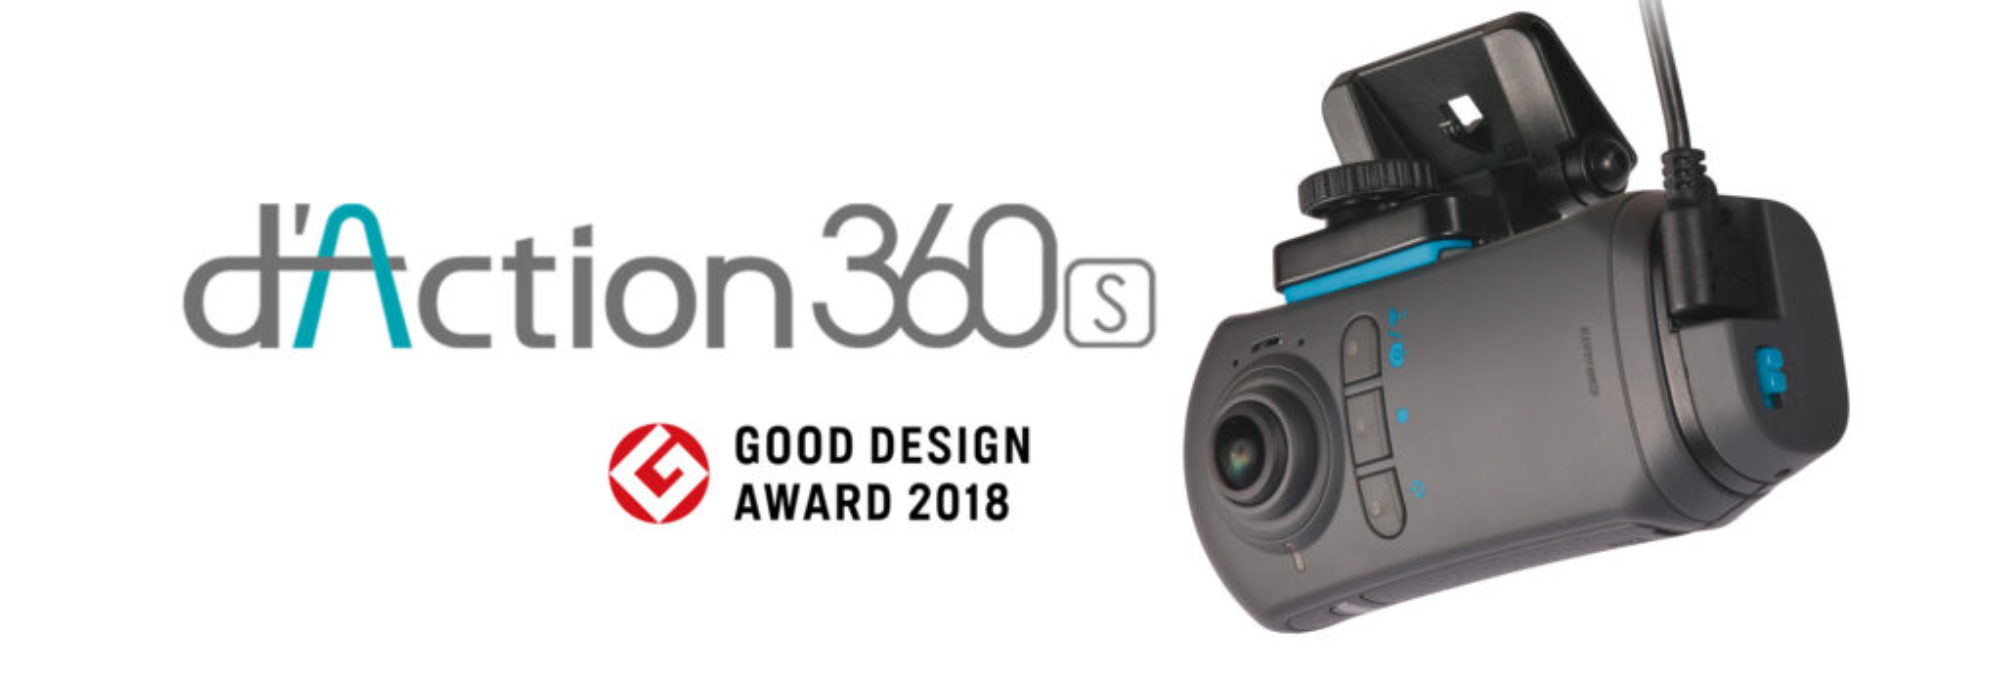 5000A good design award_01